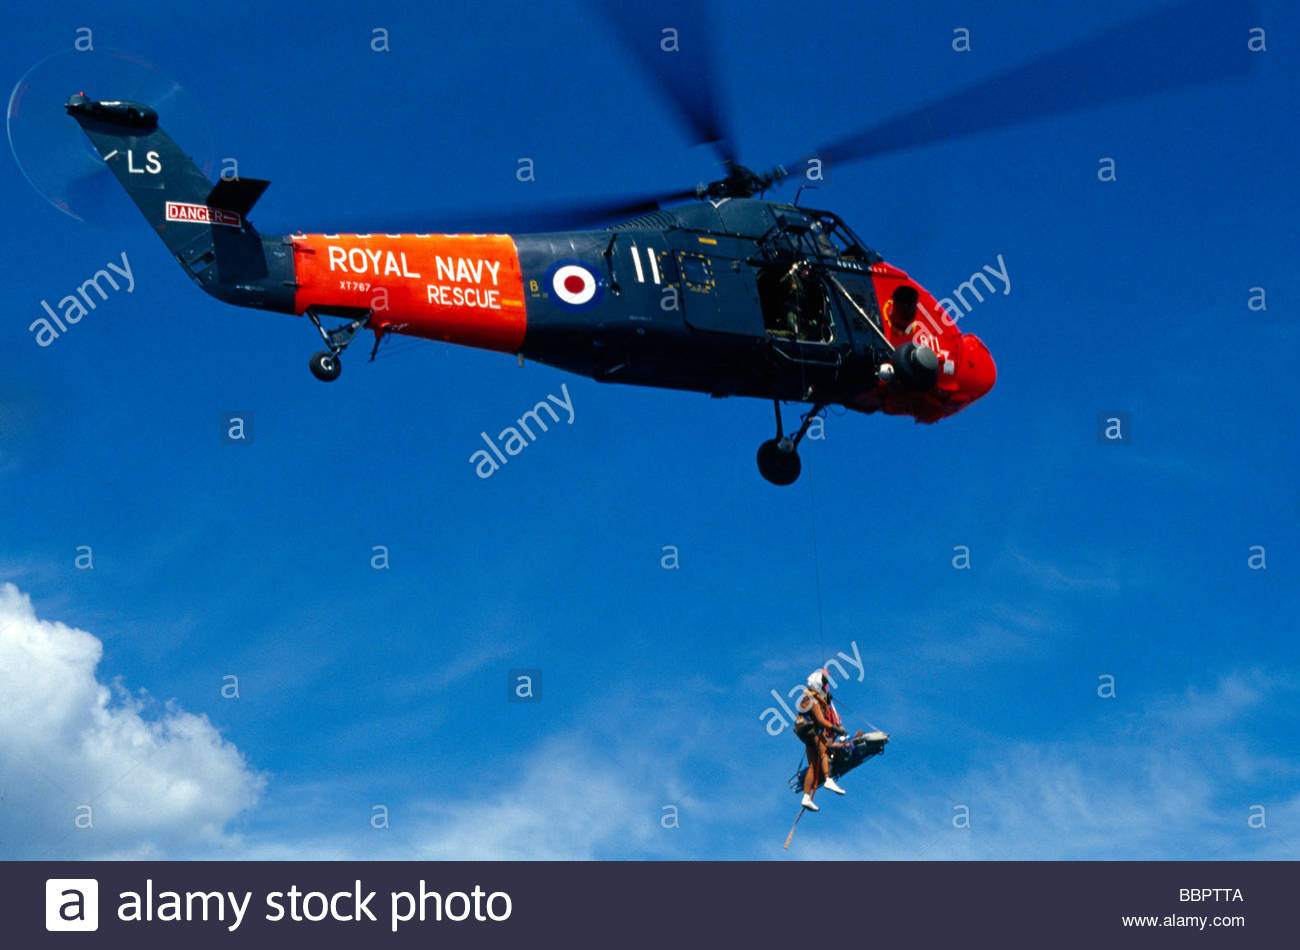 Air Sea Resuce From Sand Serin English Channel - Stock Image